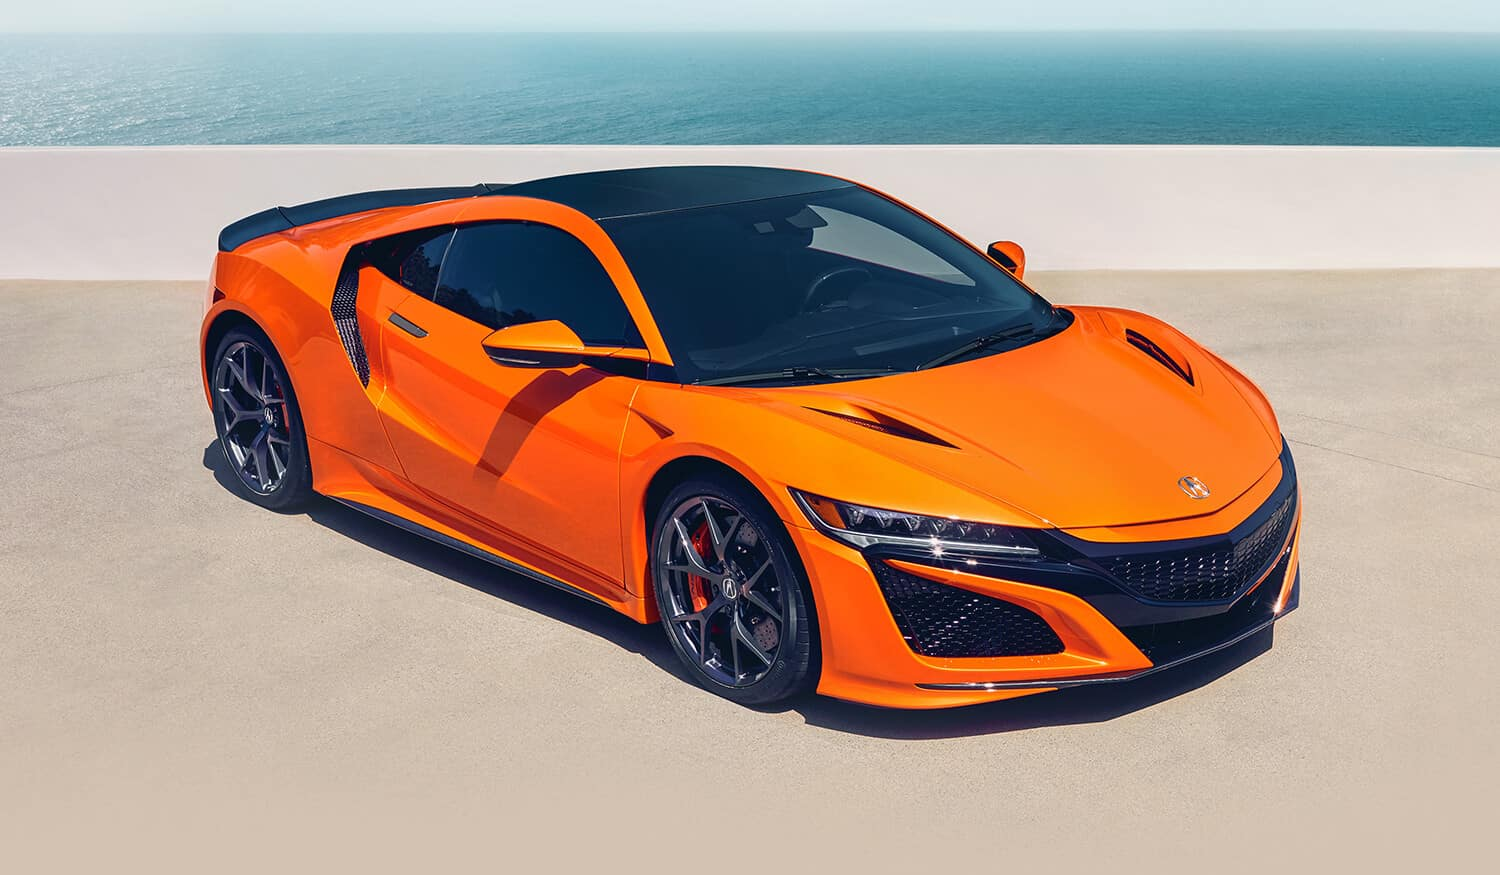 2019 Acura NSX Exterior Front Angle Passenger Side Thermal Orange